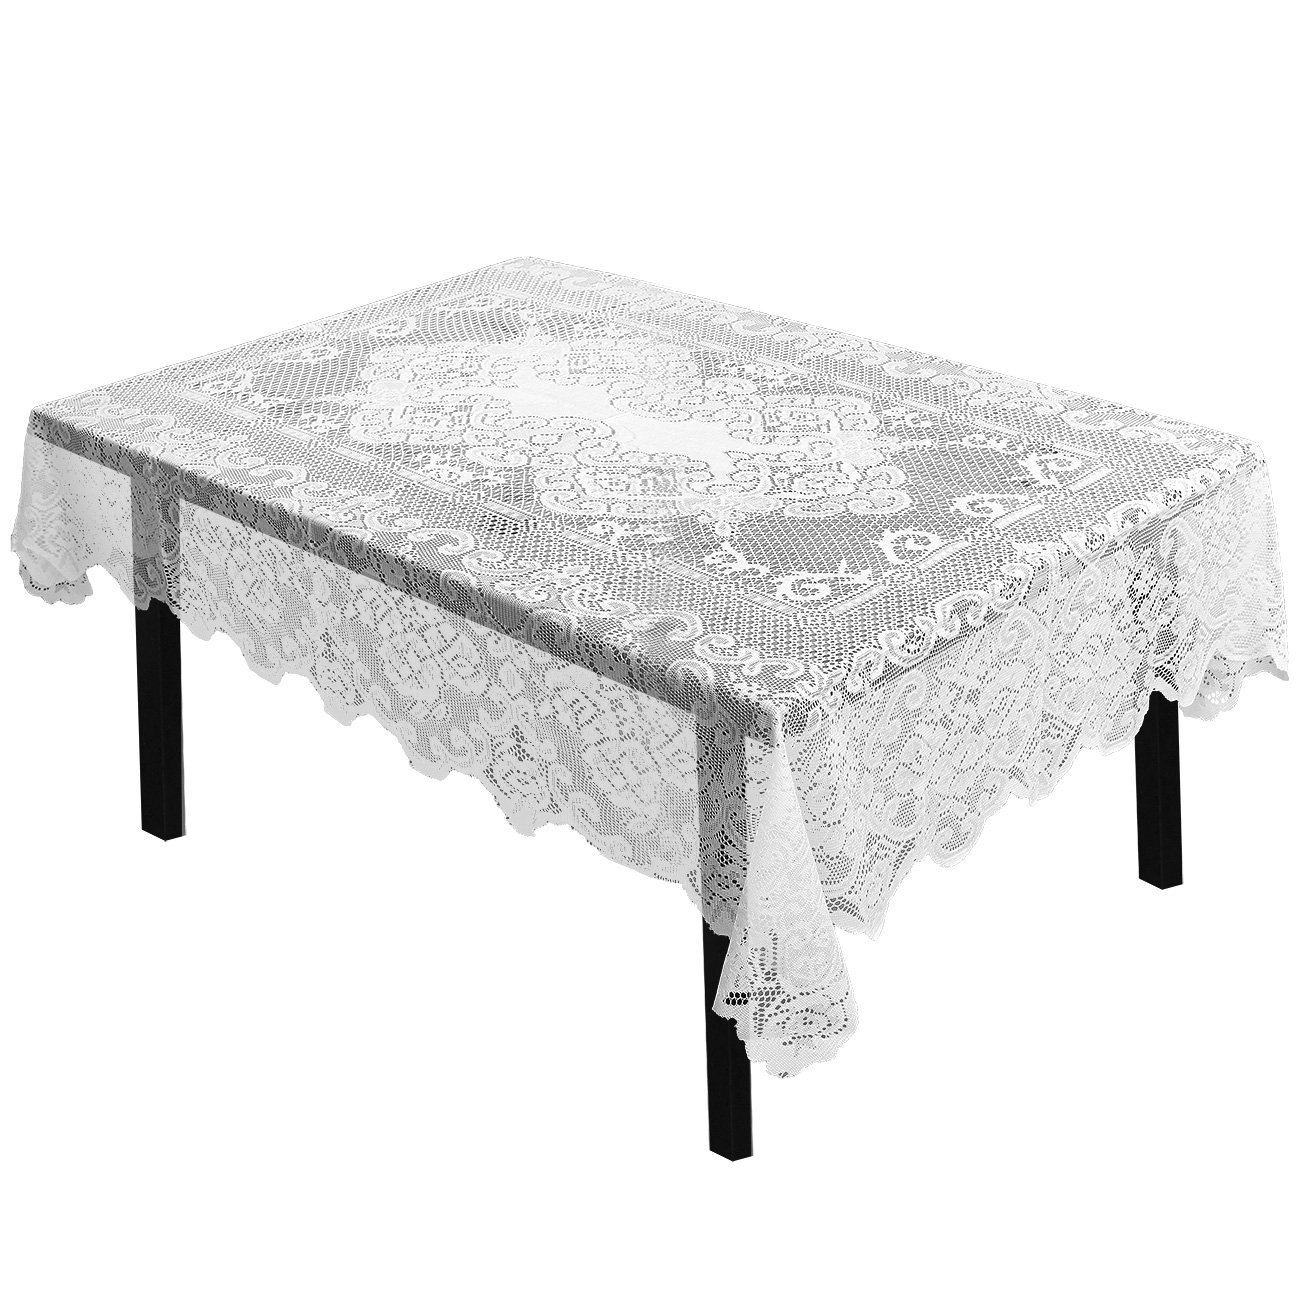 Juvale Lace Tablecloth - Rectangular Tablecloth Elegant Floral Patterns - Perfect Birthday Parties, Wedding Receptions, Baby Showers, Dining Room Tables, White, 54 x 72 inches